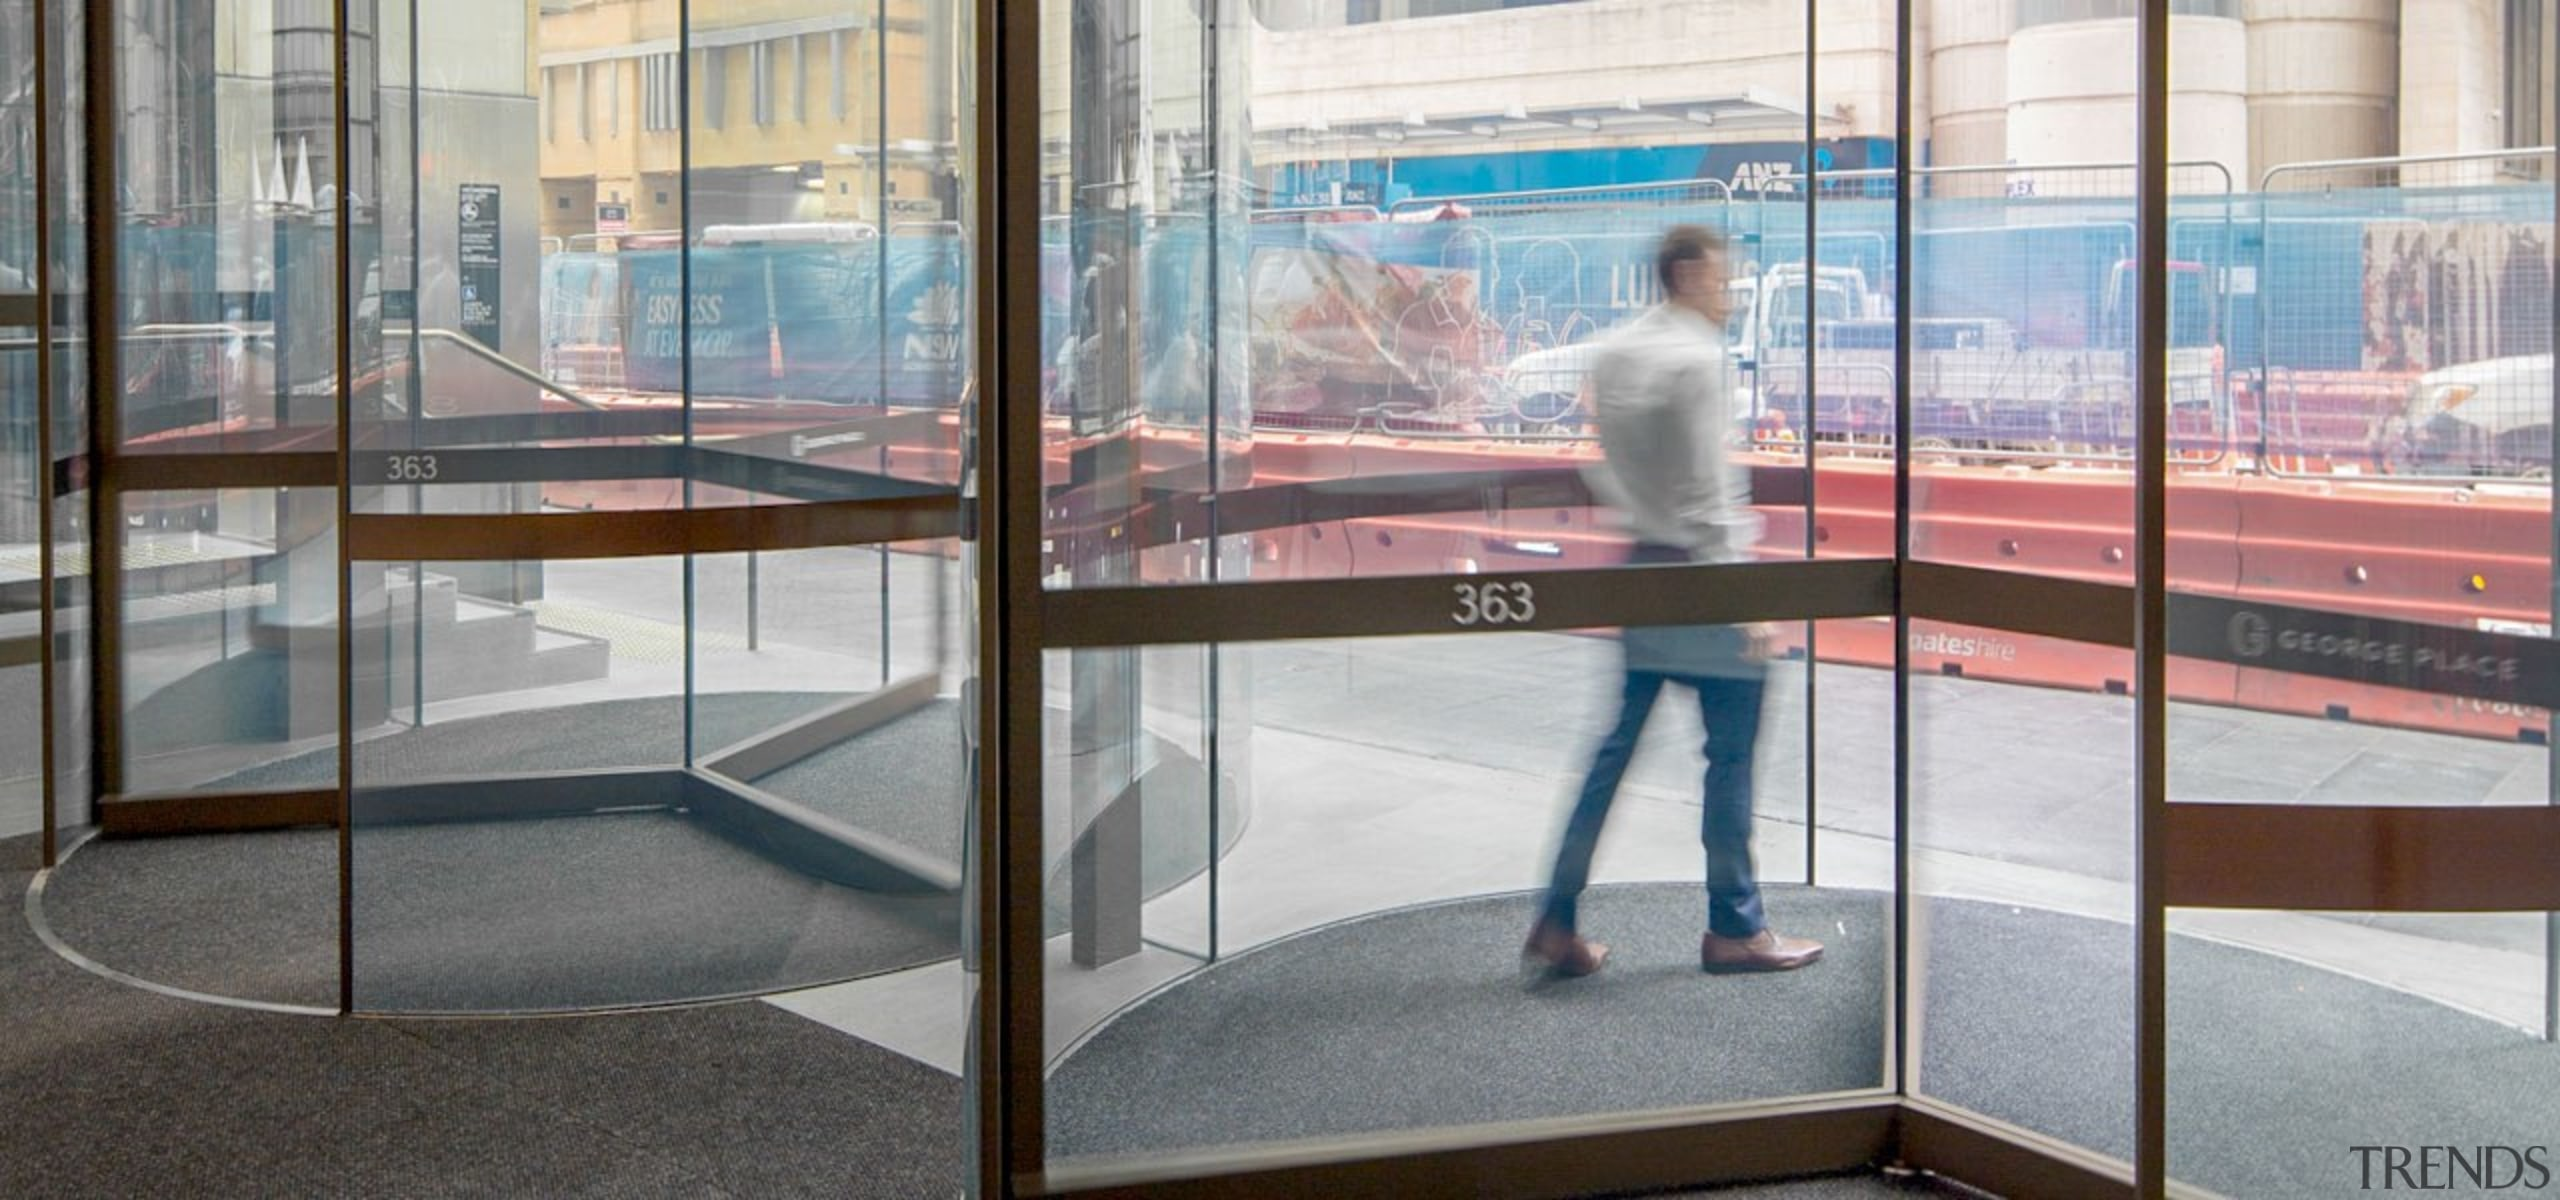 George Place 02 - architecture   display case architecture, display case, display window, door, glass, interior design, metal, reflection, room, transparent material, window, window film, gray